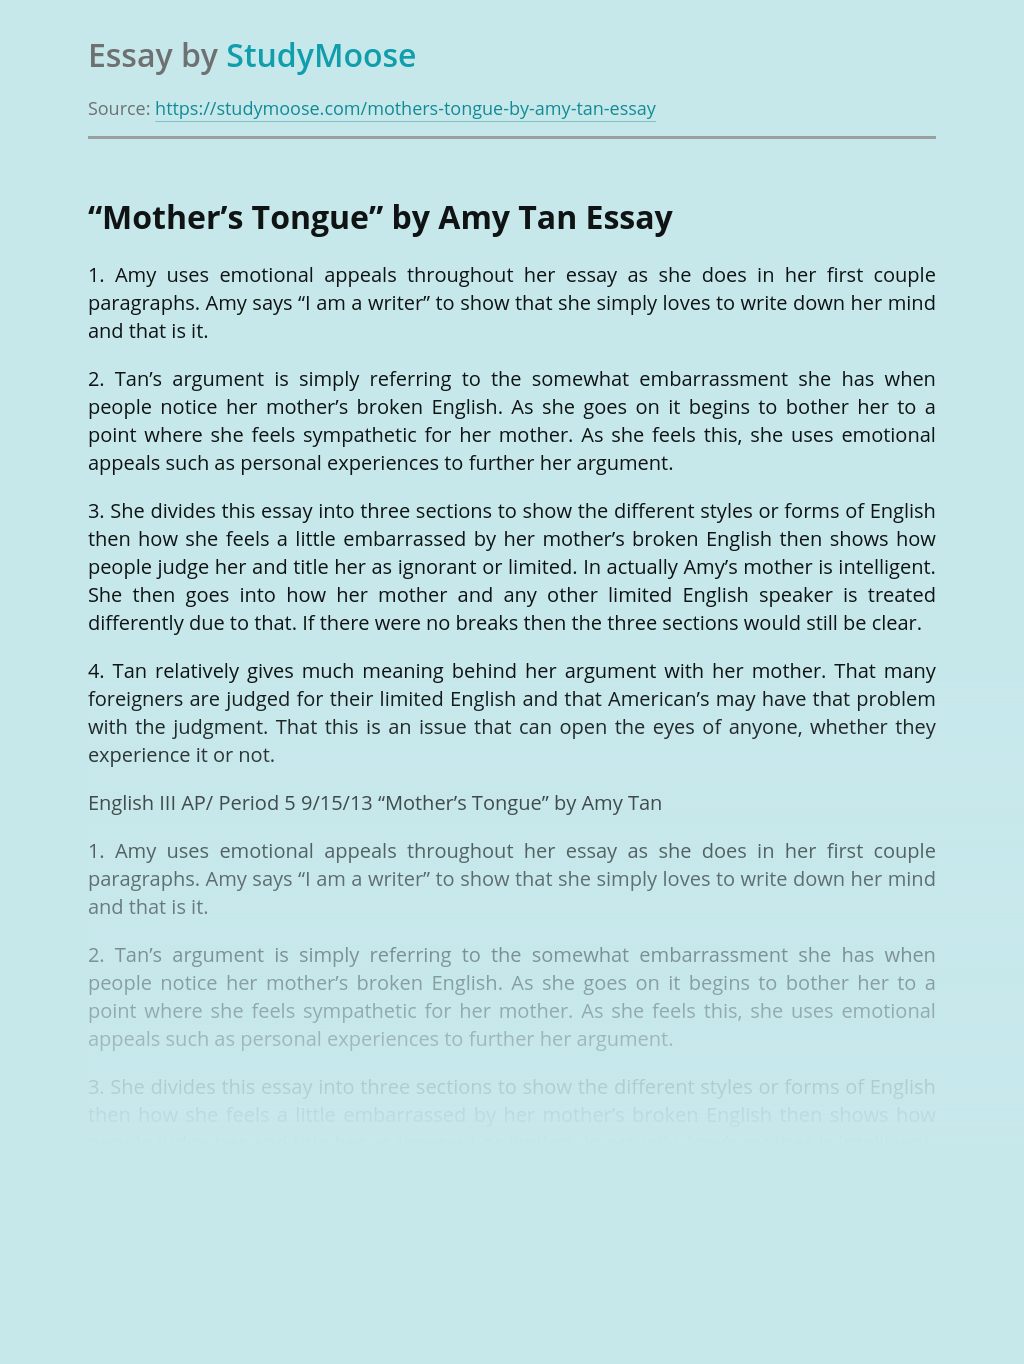 Amy Tan On English Language in Mother's Tongue